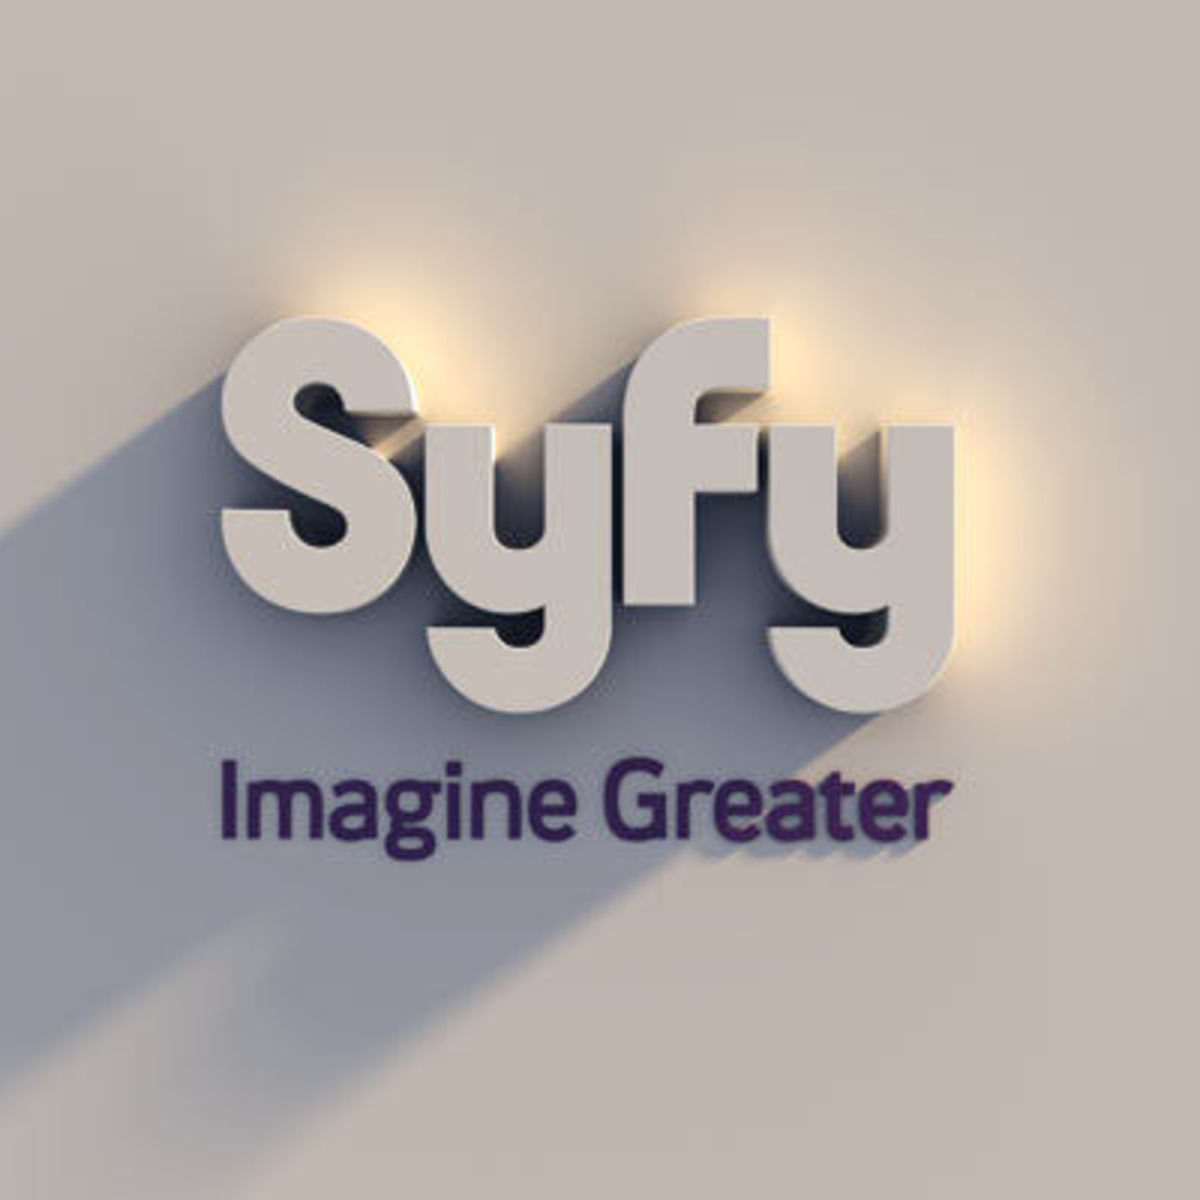 "sci fi channel to become syfy; ""imagine greater"" is new message"